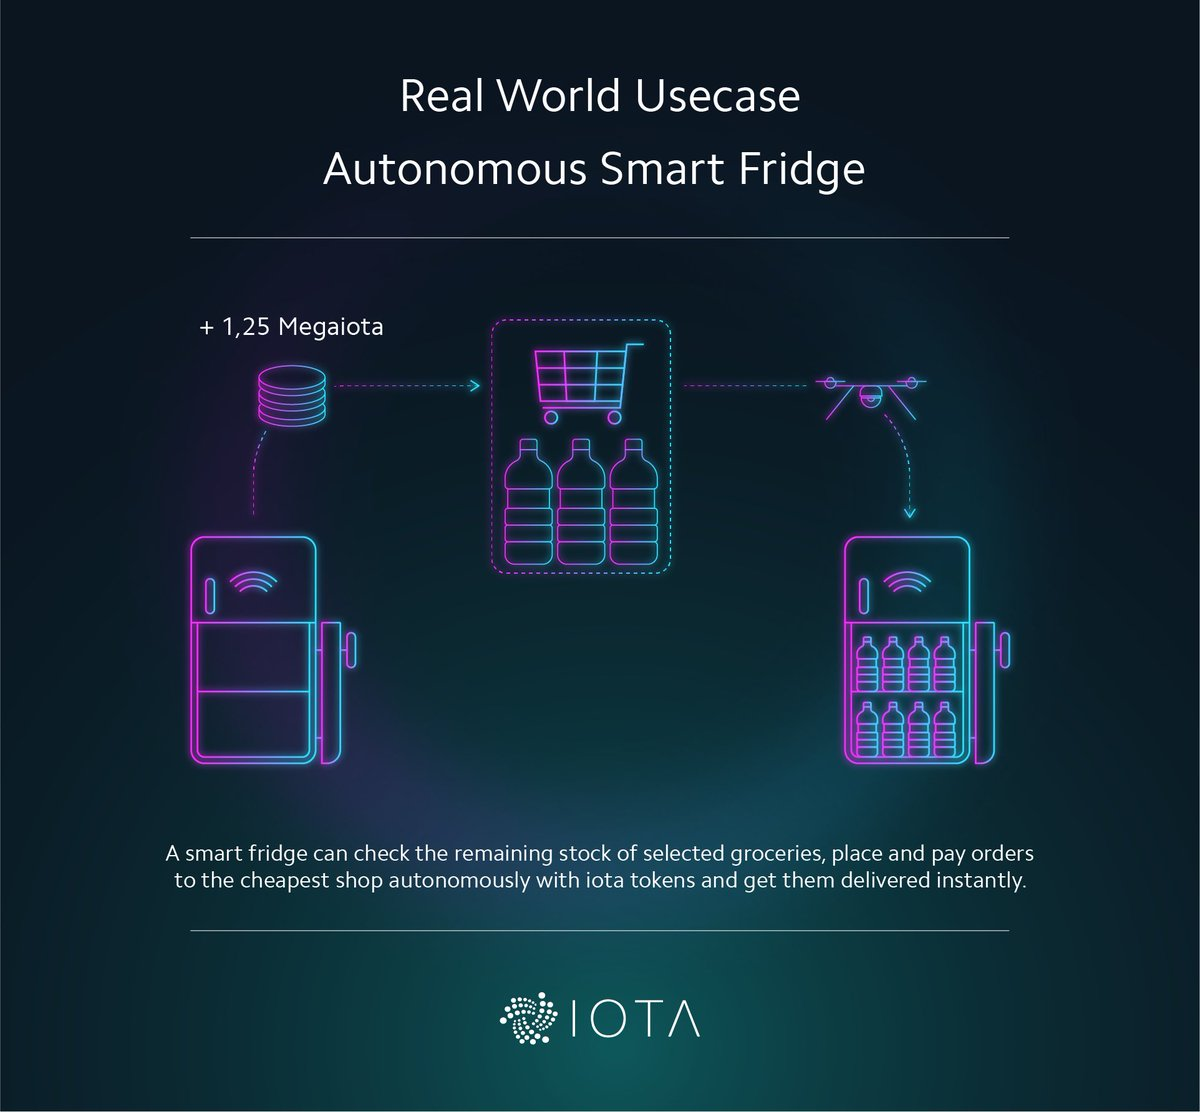 IOTA real world use case of autonomous smart fridge